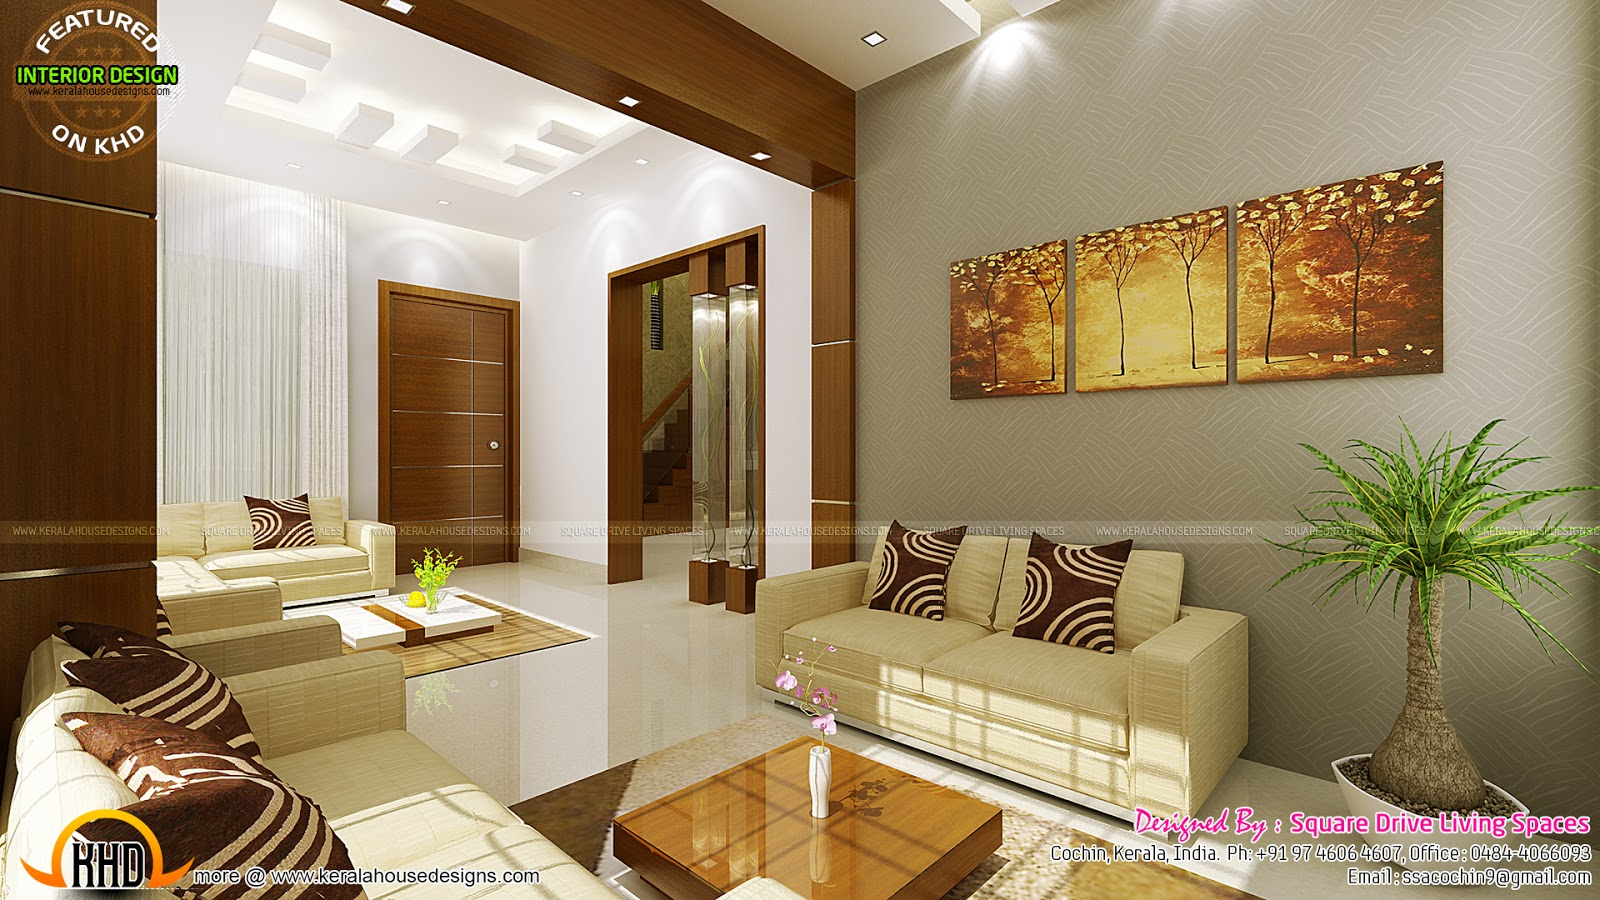 Contemporary kitchen dining and living room kerala home for Kerala home living room designs